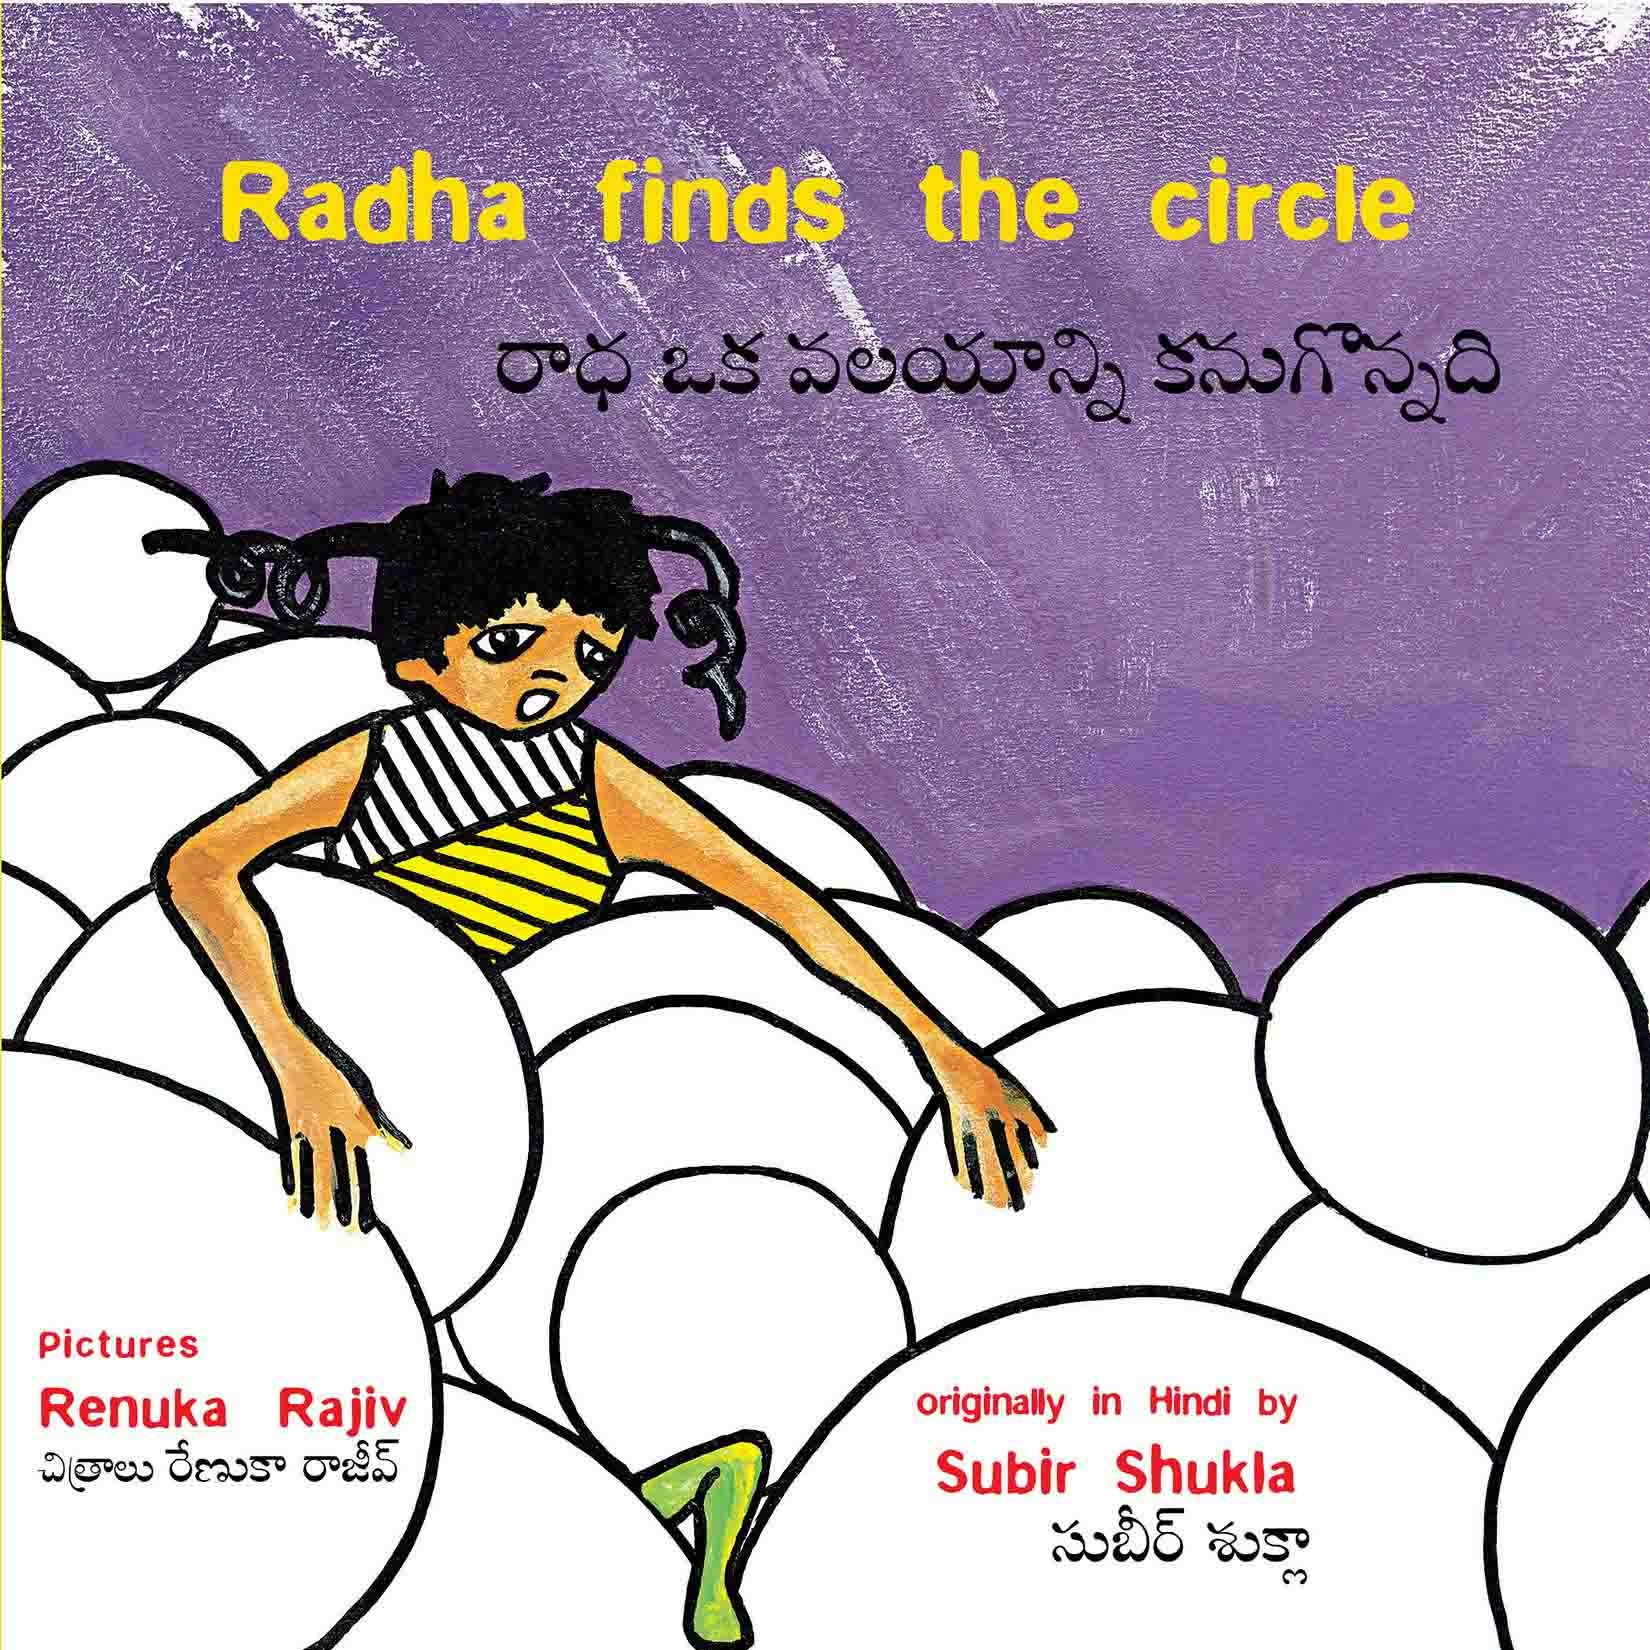 Radha Finds The Circle/Radha Valayaanni Kanugonnadi (English-Telugu)